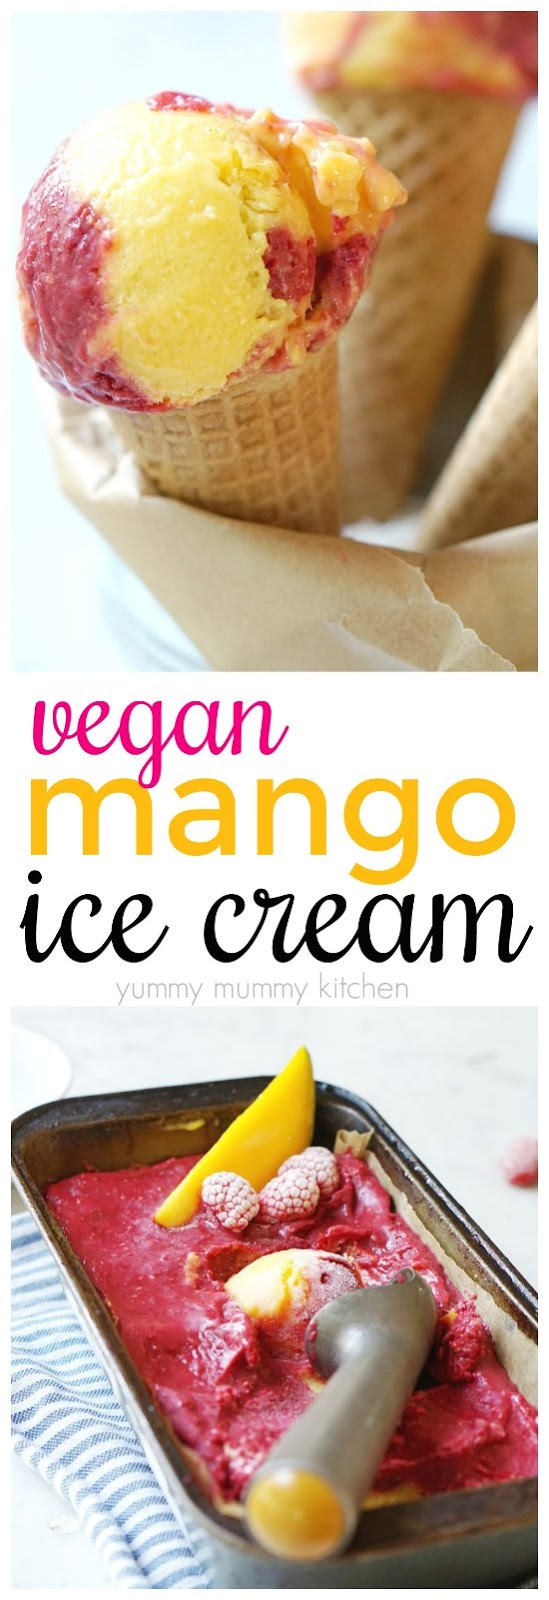 Easy 2-ingredient mango and raspberry swirled vegan ice cream recipe. This nice cream is easy to make in the food processor or Vitamix.